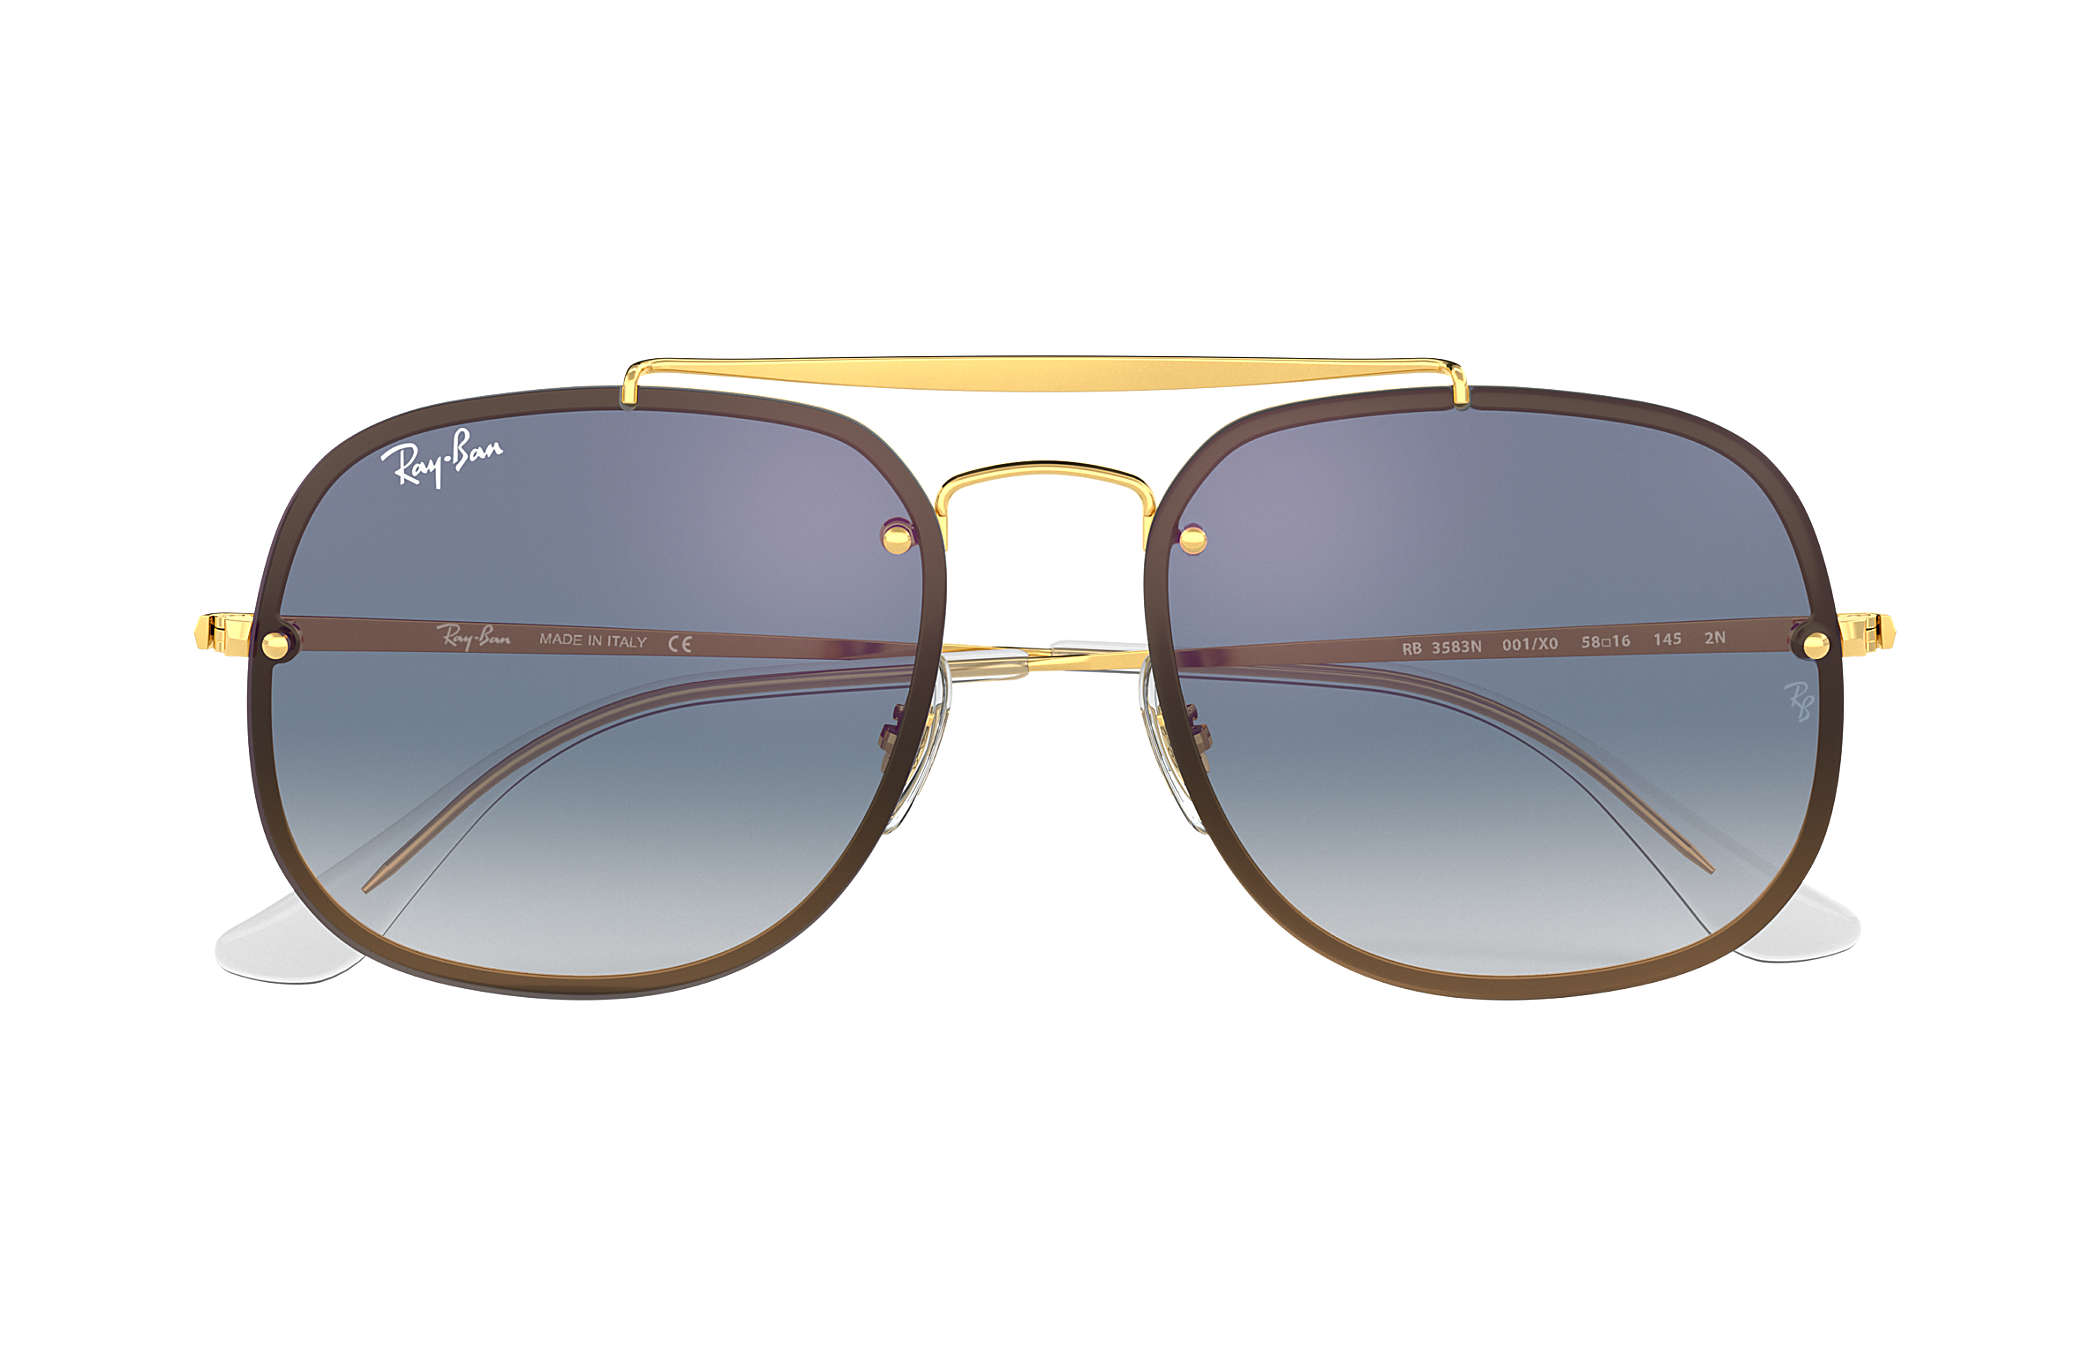 70ad66570a7d4 Ray-Ban Blaze General RB3583N Gold - Steel - Blue Lenses ...